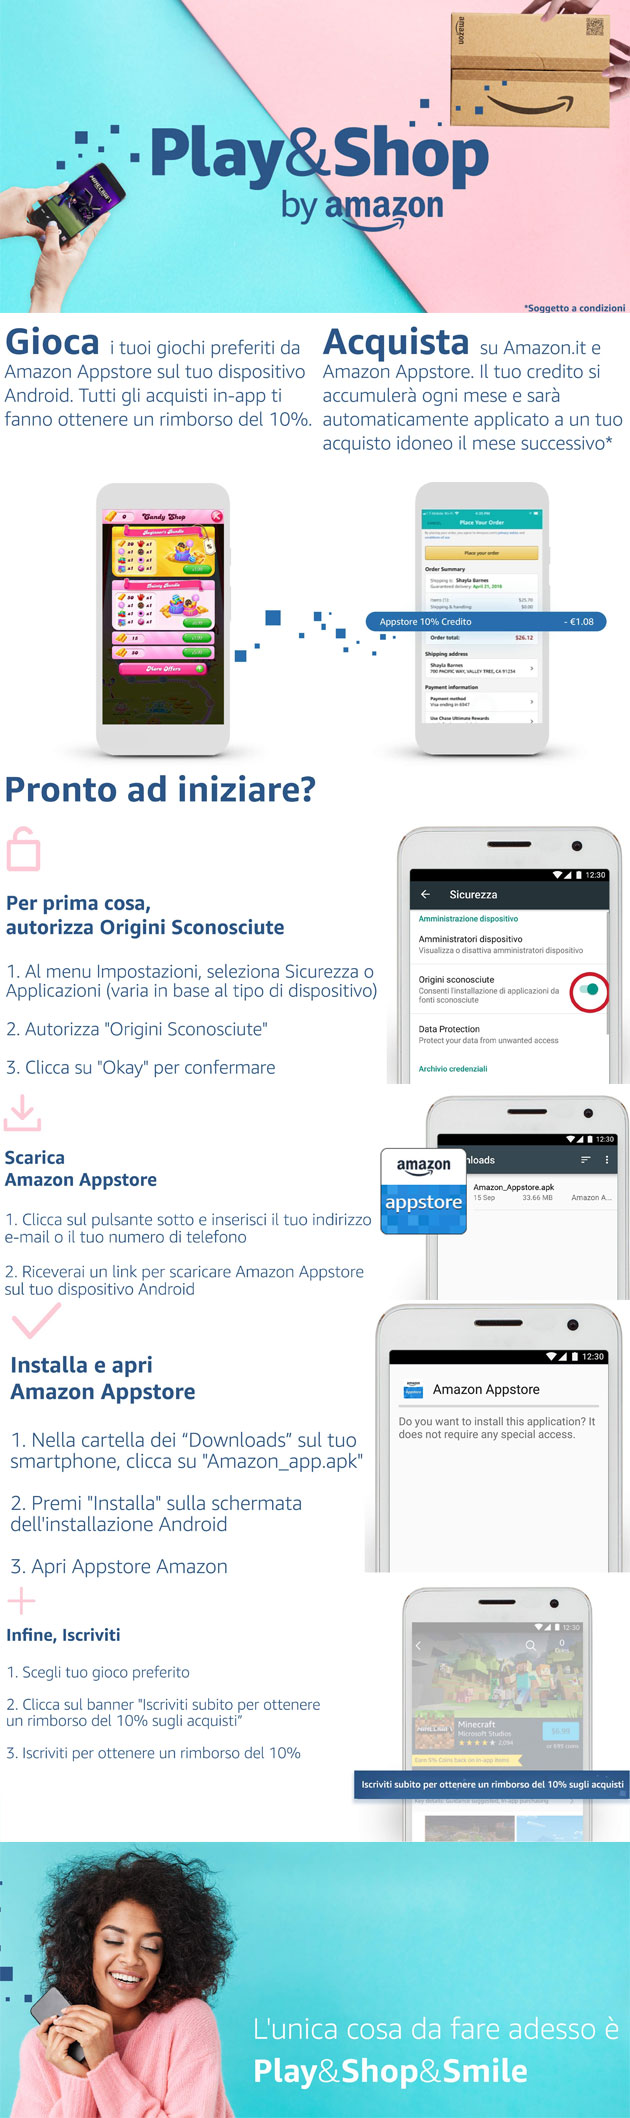 Amazon Appstore Play and Shop - come funziona